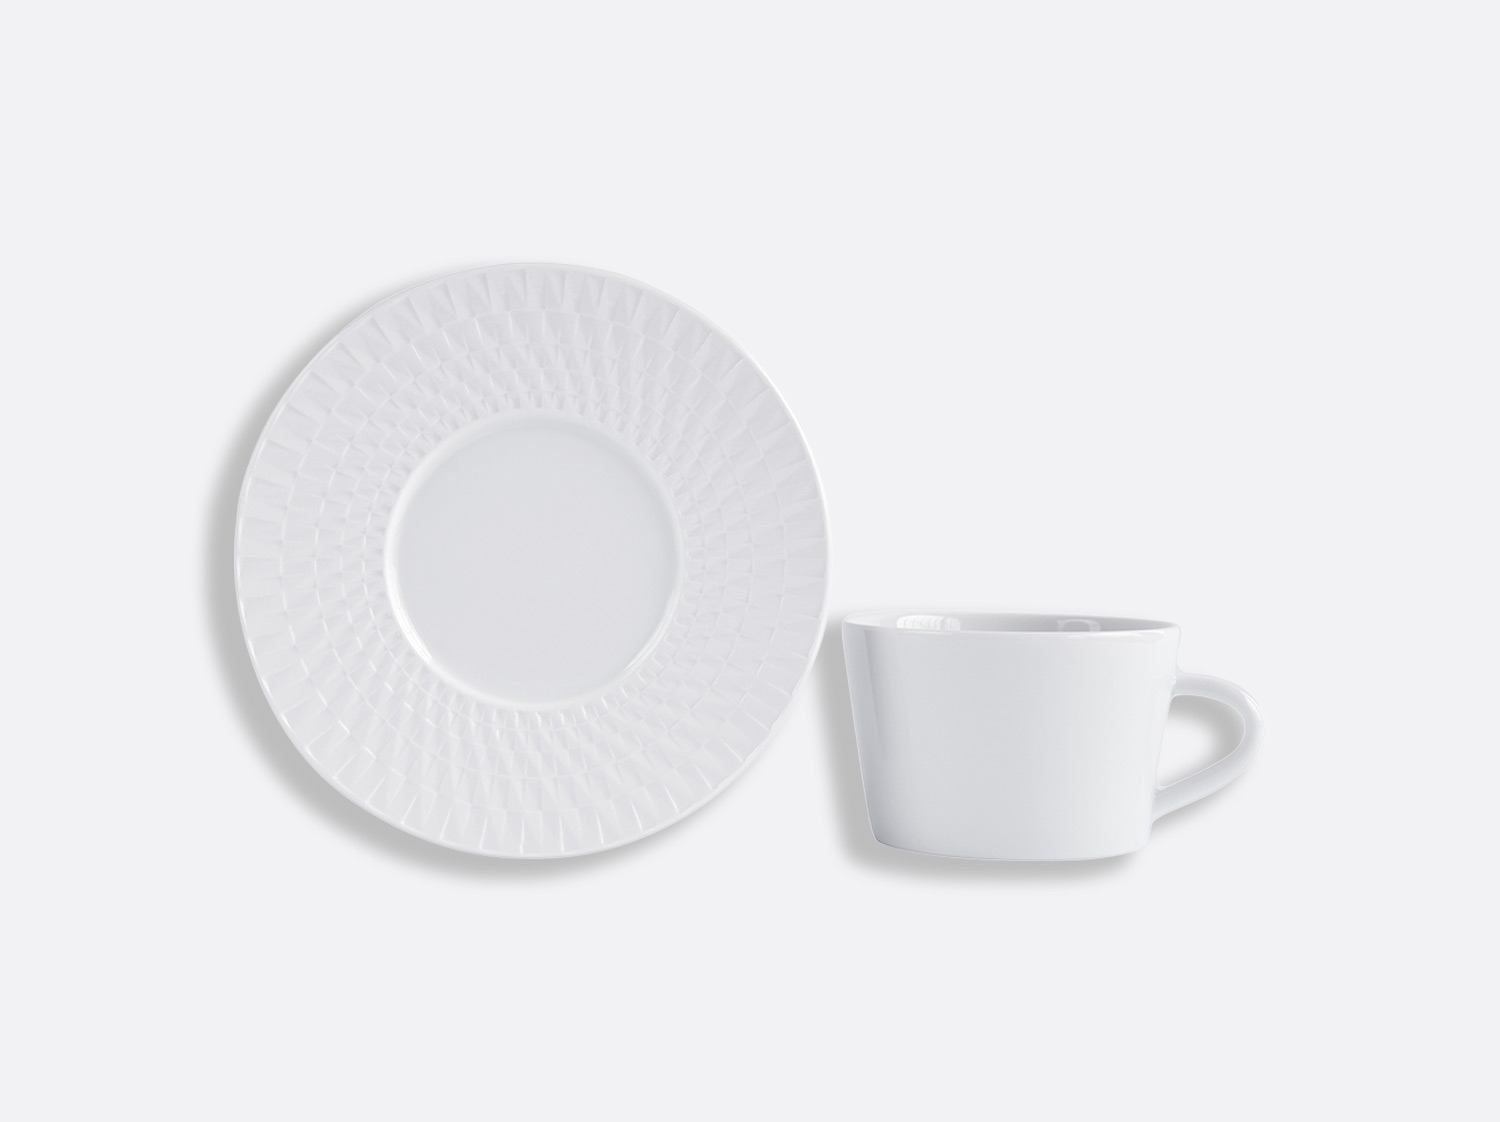 Tasse & soucoupe thé 15 cl en porcelaine de la collection Twist Bernardaud